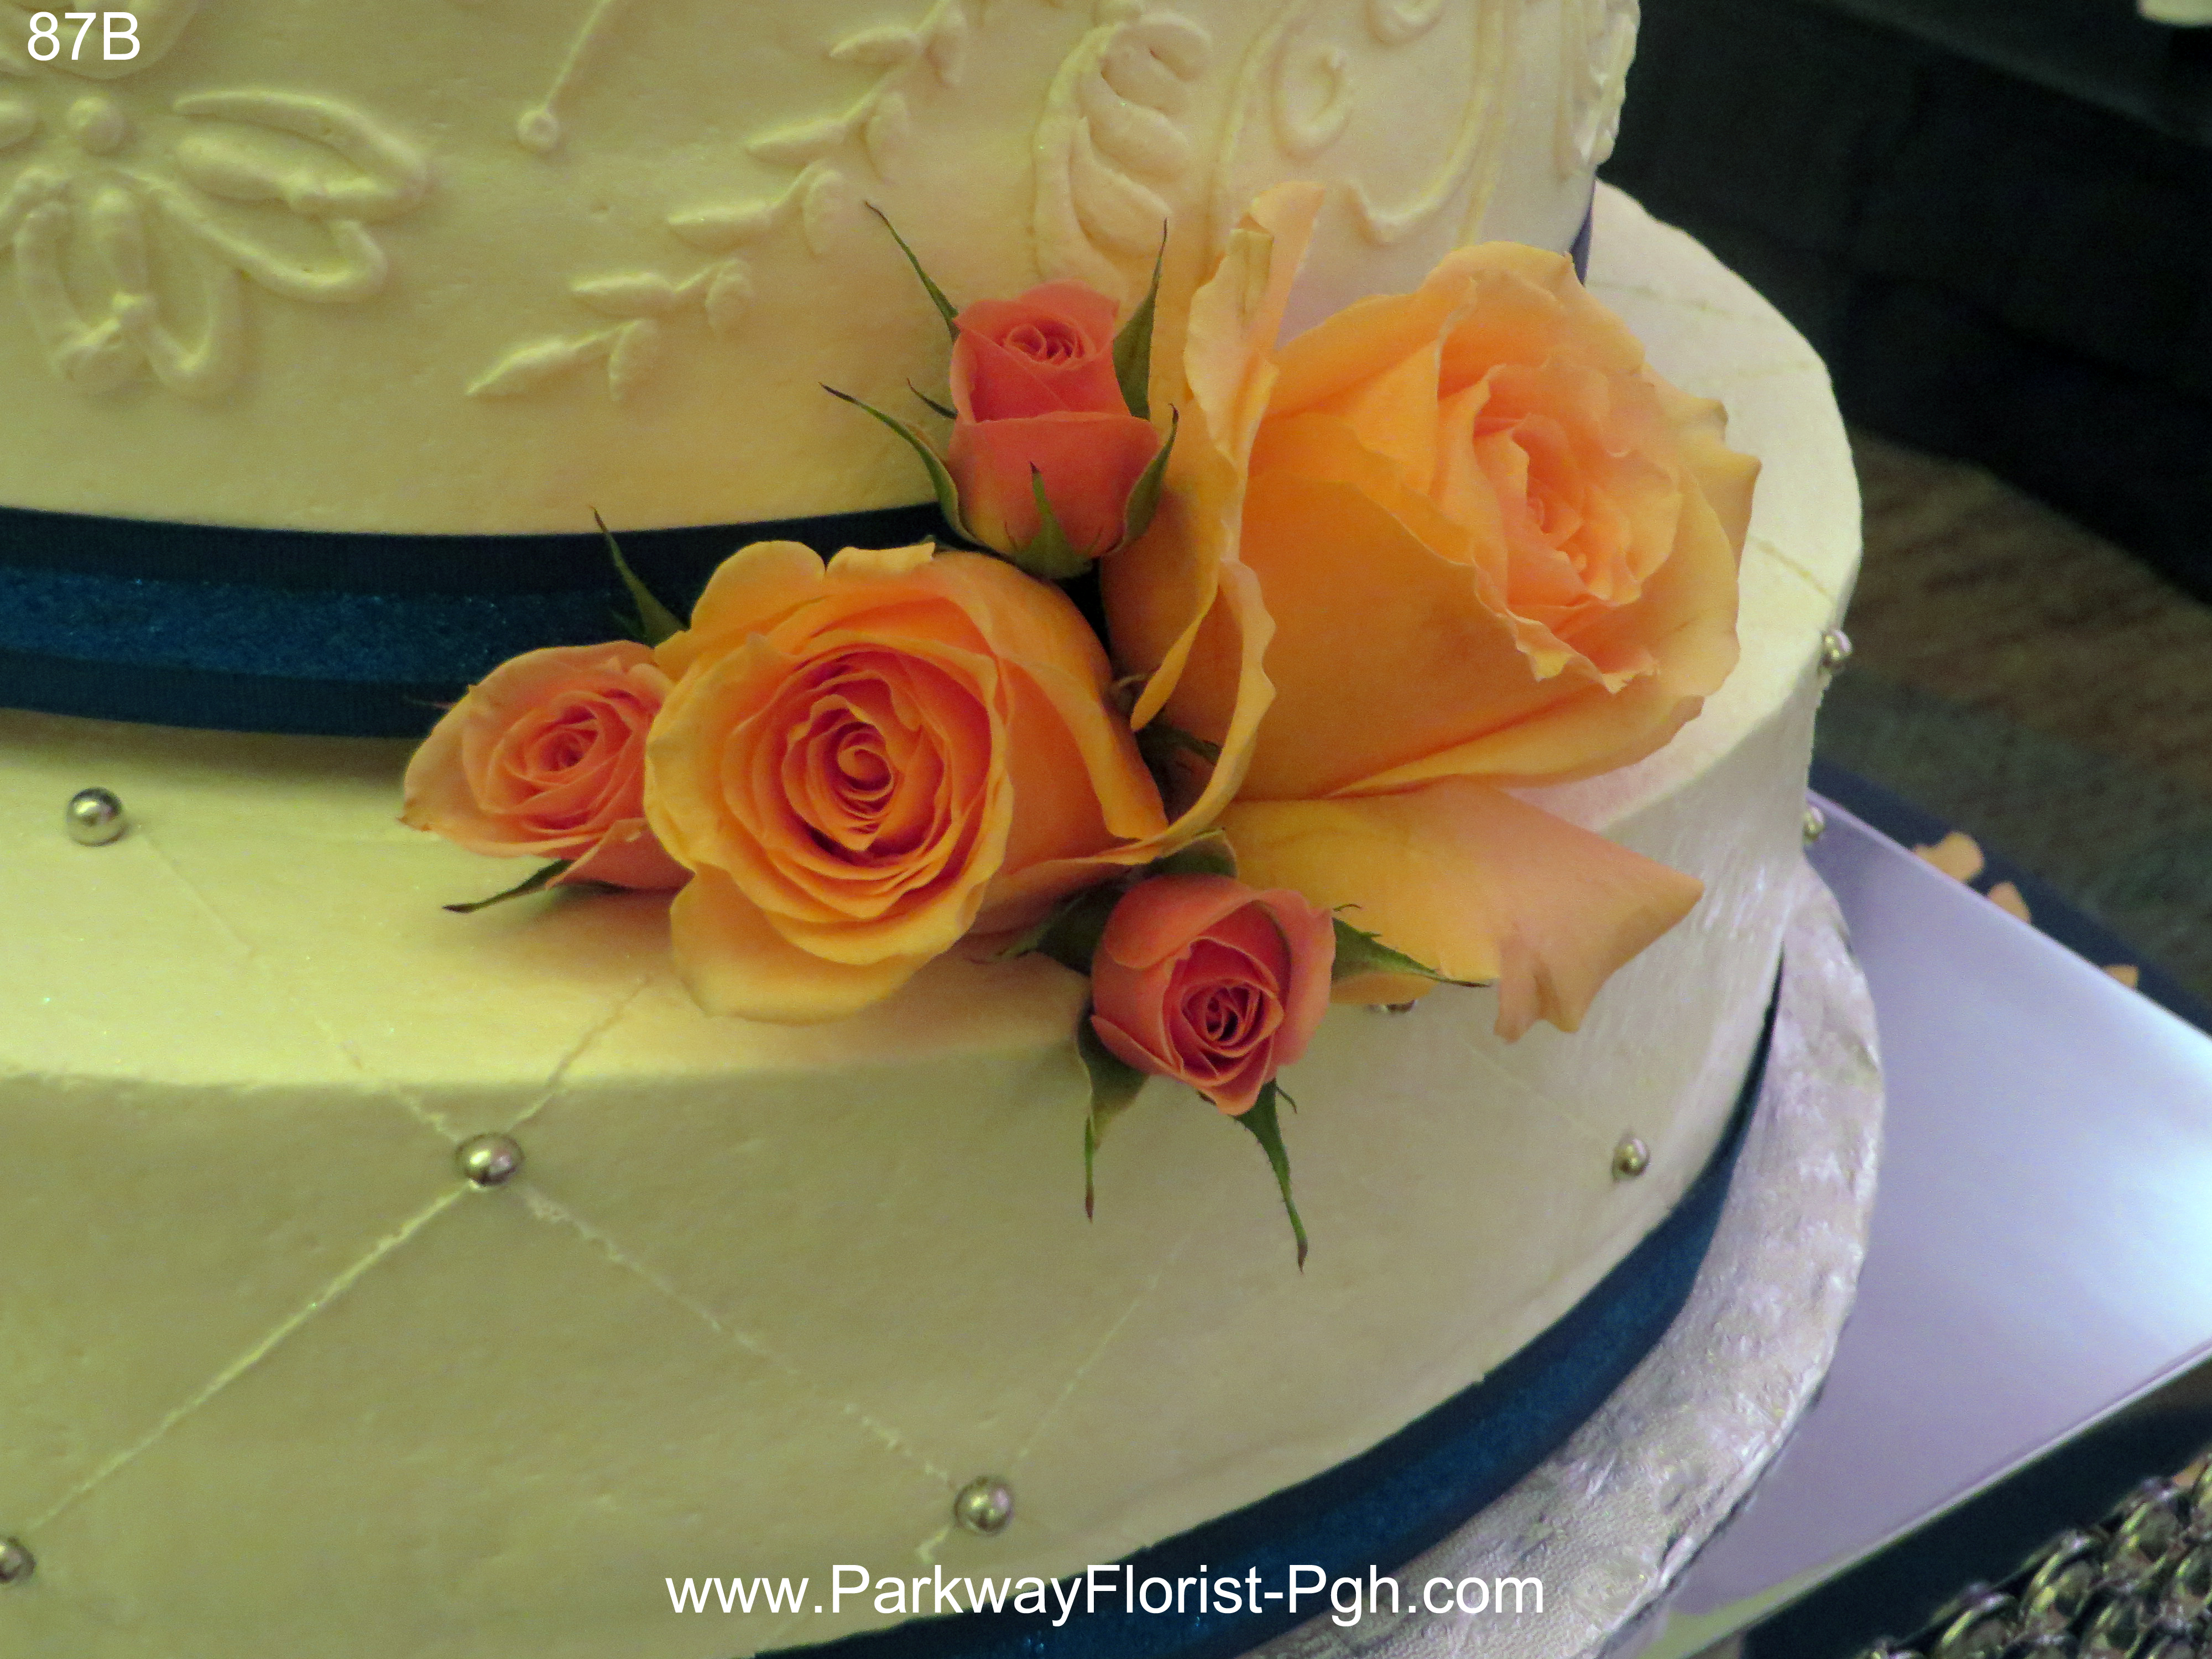 flowers on cakes Parkway Florist Pittsburgh Blog